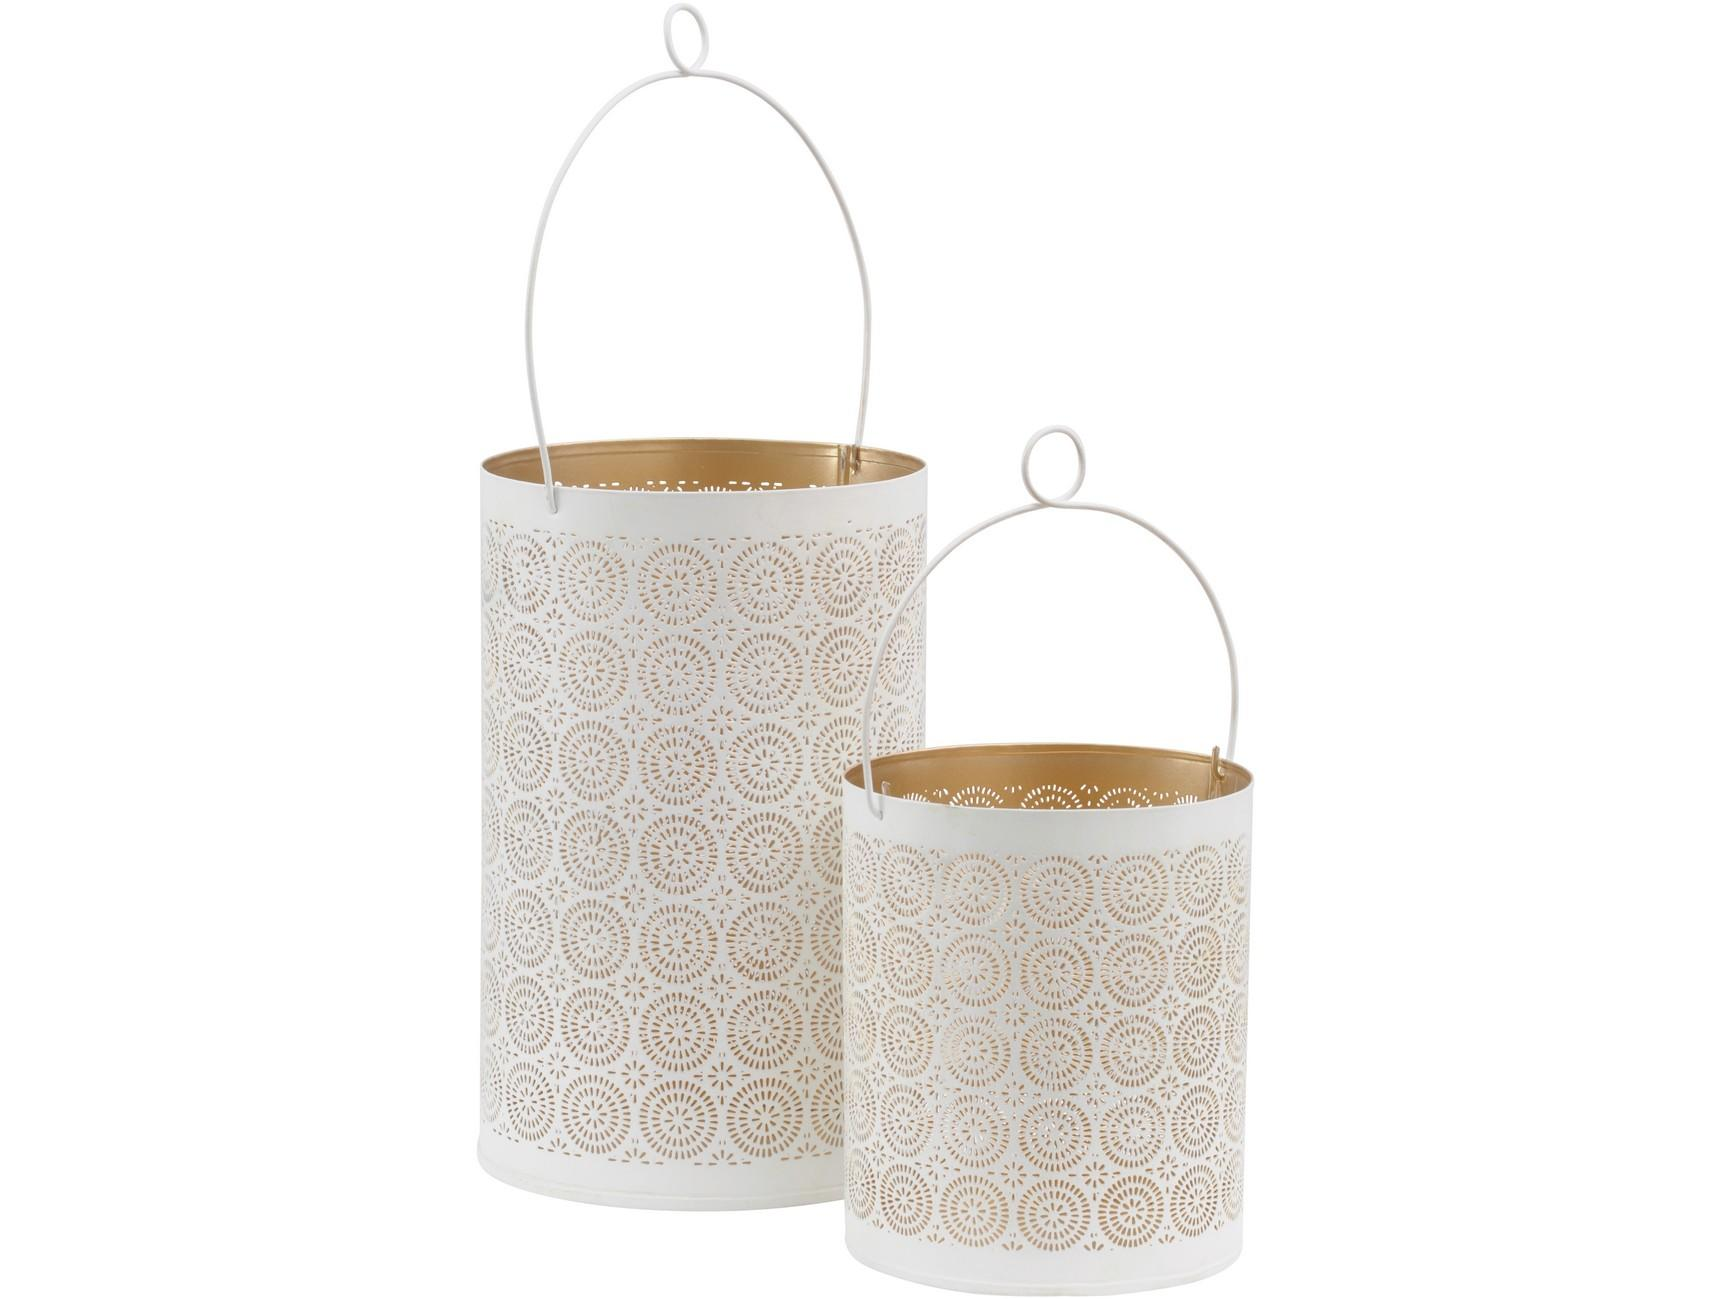 L074 700377 White And Gold Drum Set of 2 Hurricane Tealight Holders LIBRA INTERIORS €45.00